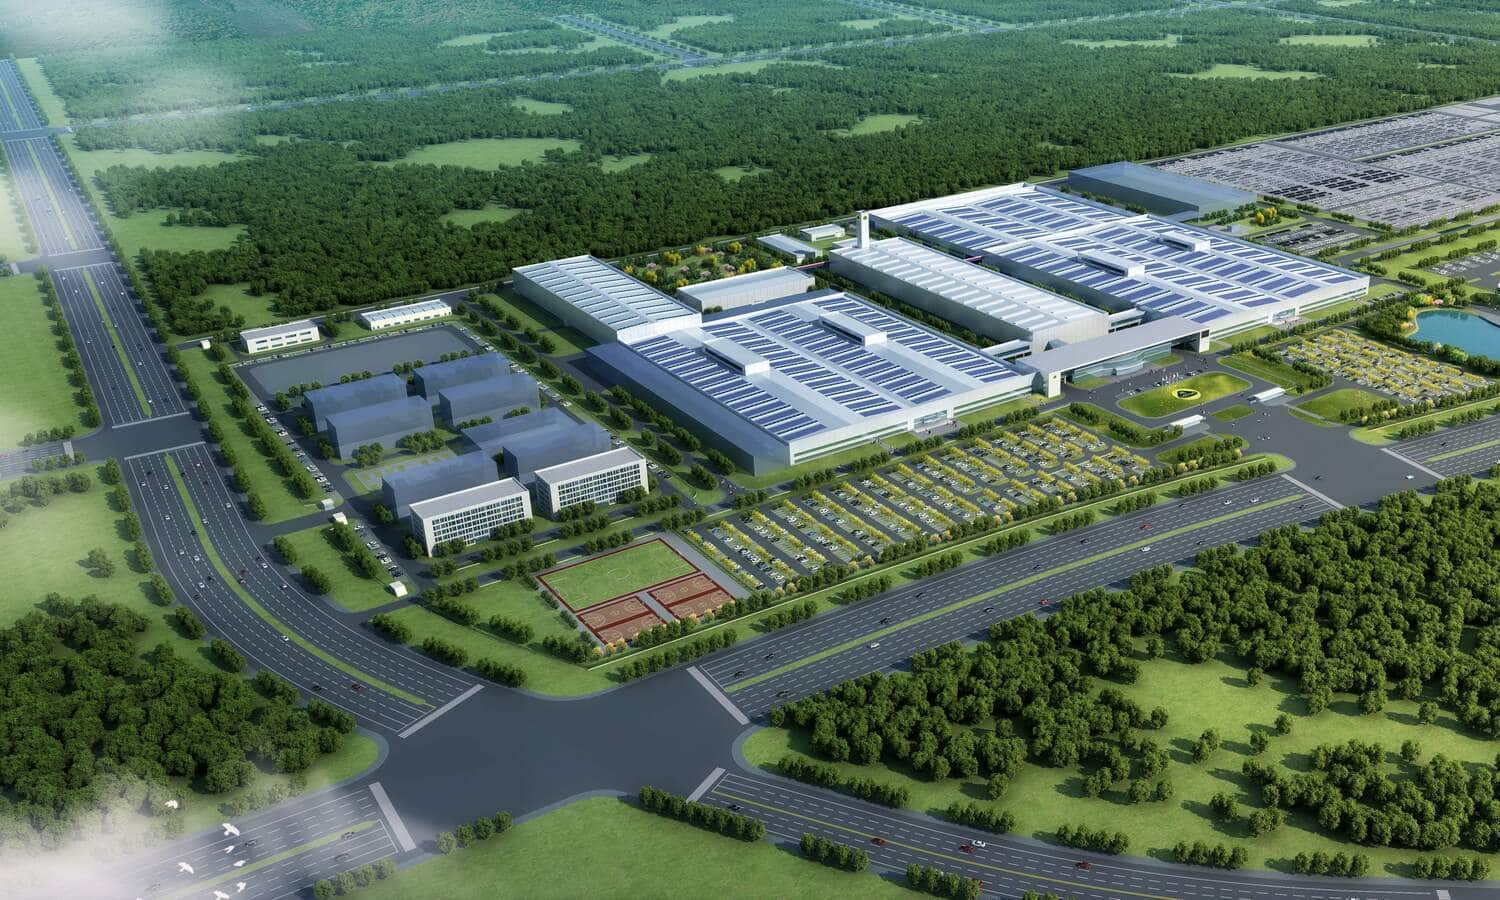 Lotus Technology manufacturing facility architectural